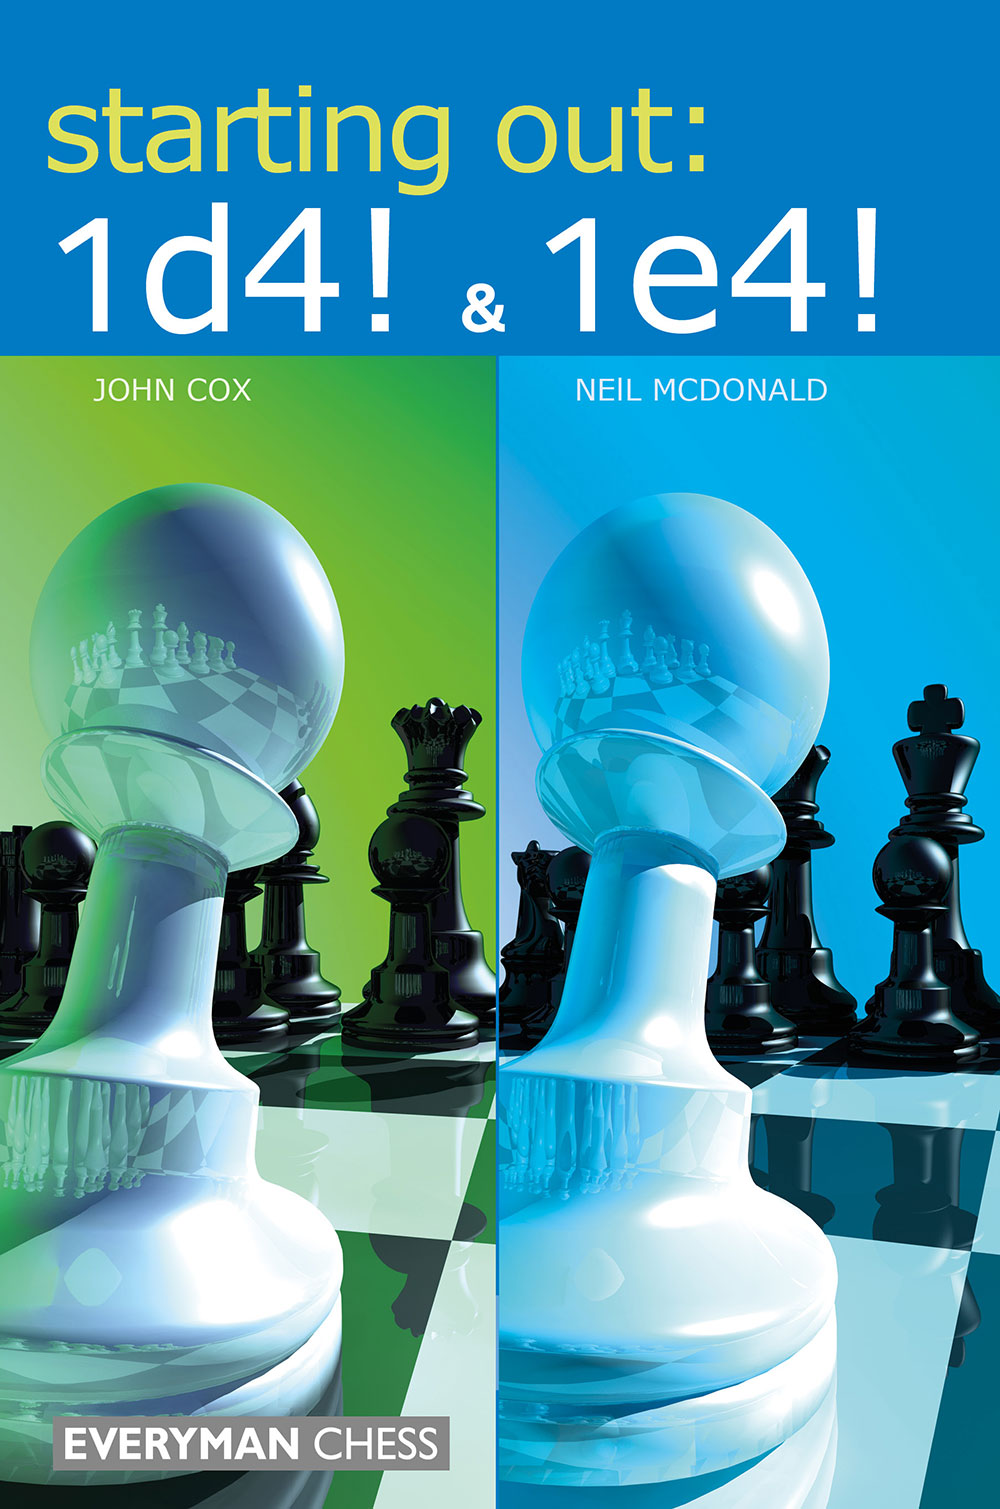 Starting Out 1d4 & 1e4 front cover